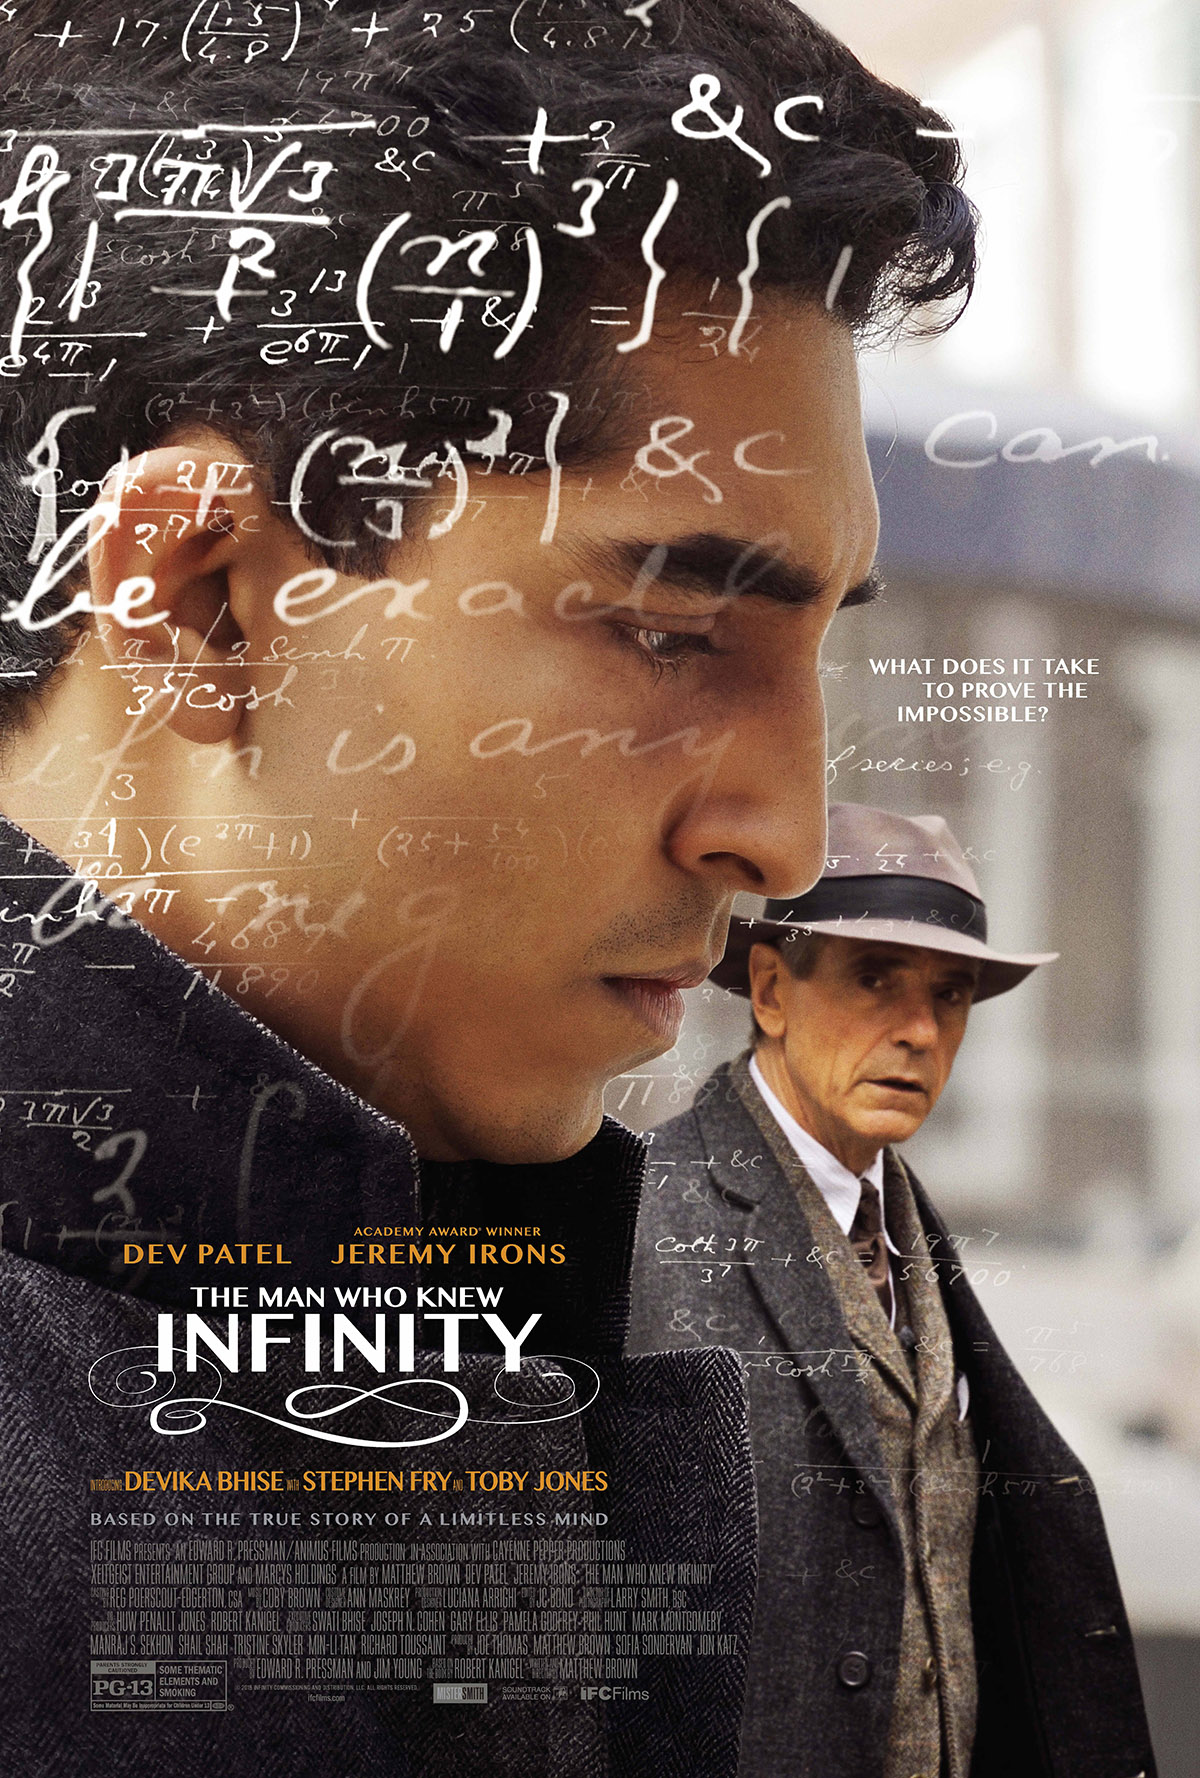 The Man Who Knew Infinity (2015) Hindi Dubbed 1080p BluRay 1.6GB Free Download